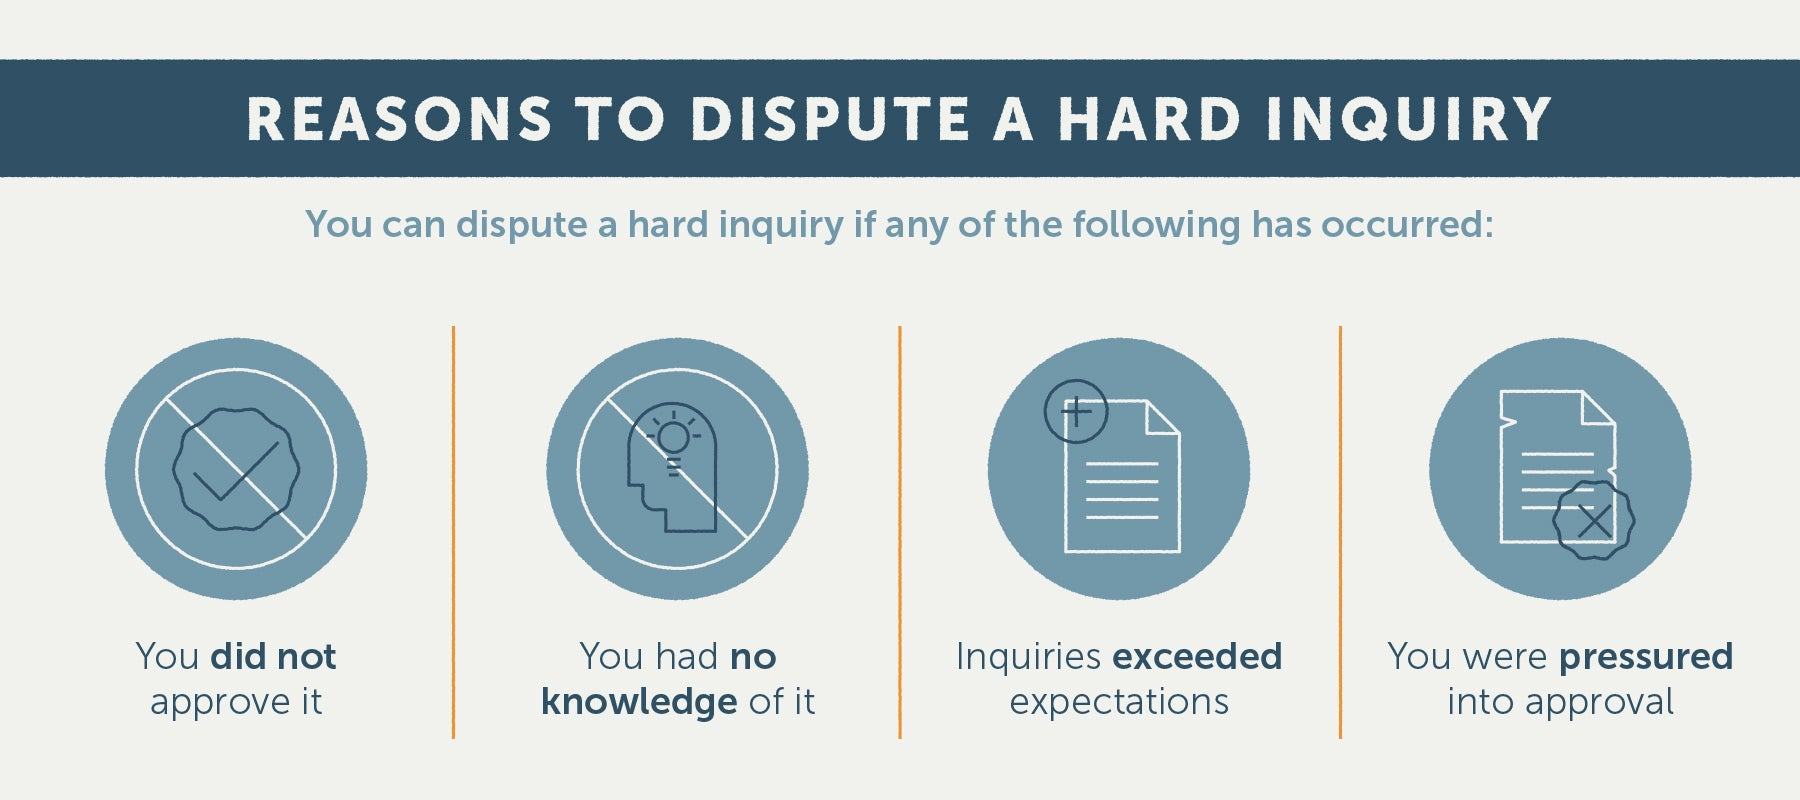 illustration showing the 4 legal reasons why you can dispute a hard inquiry